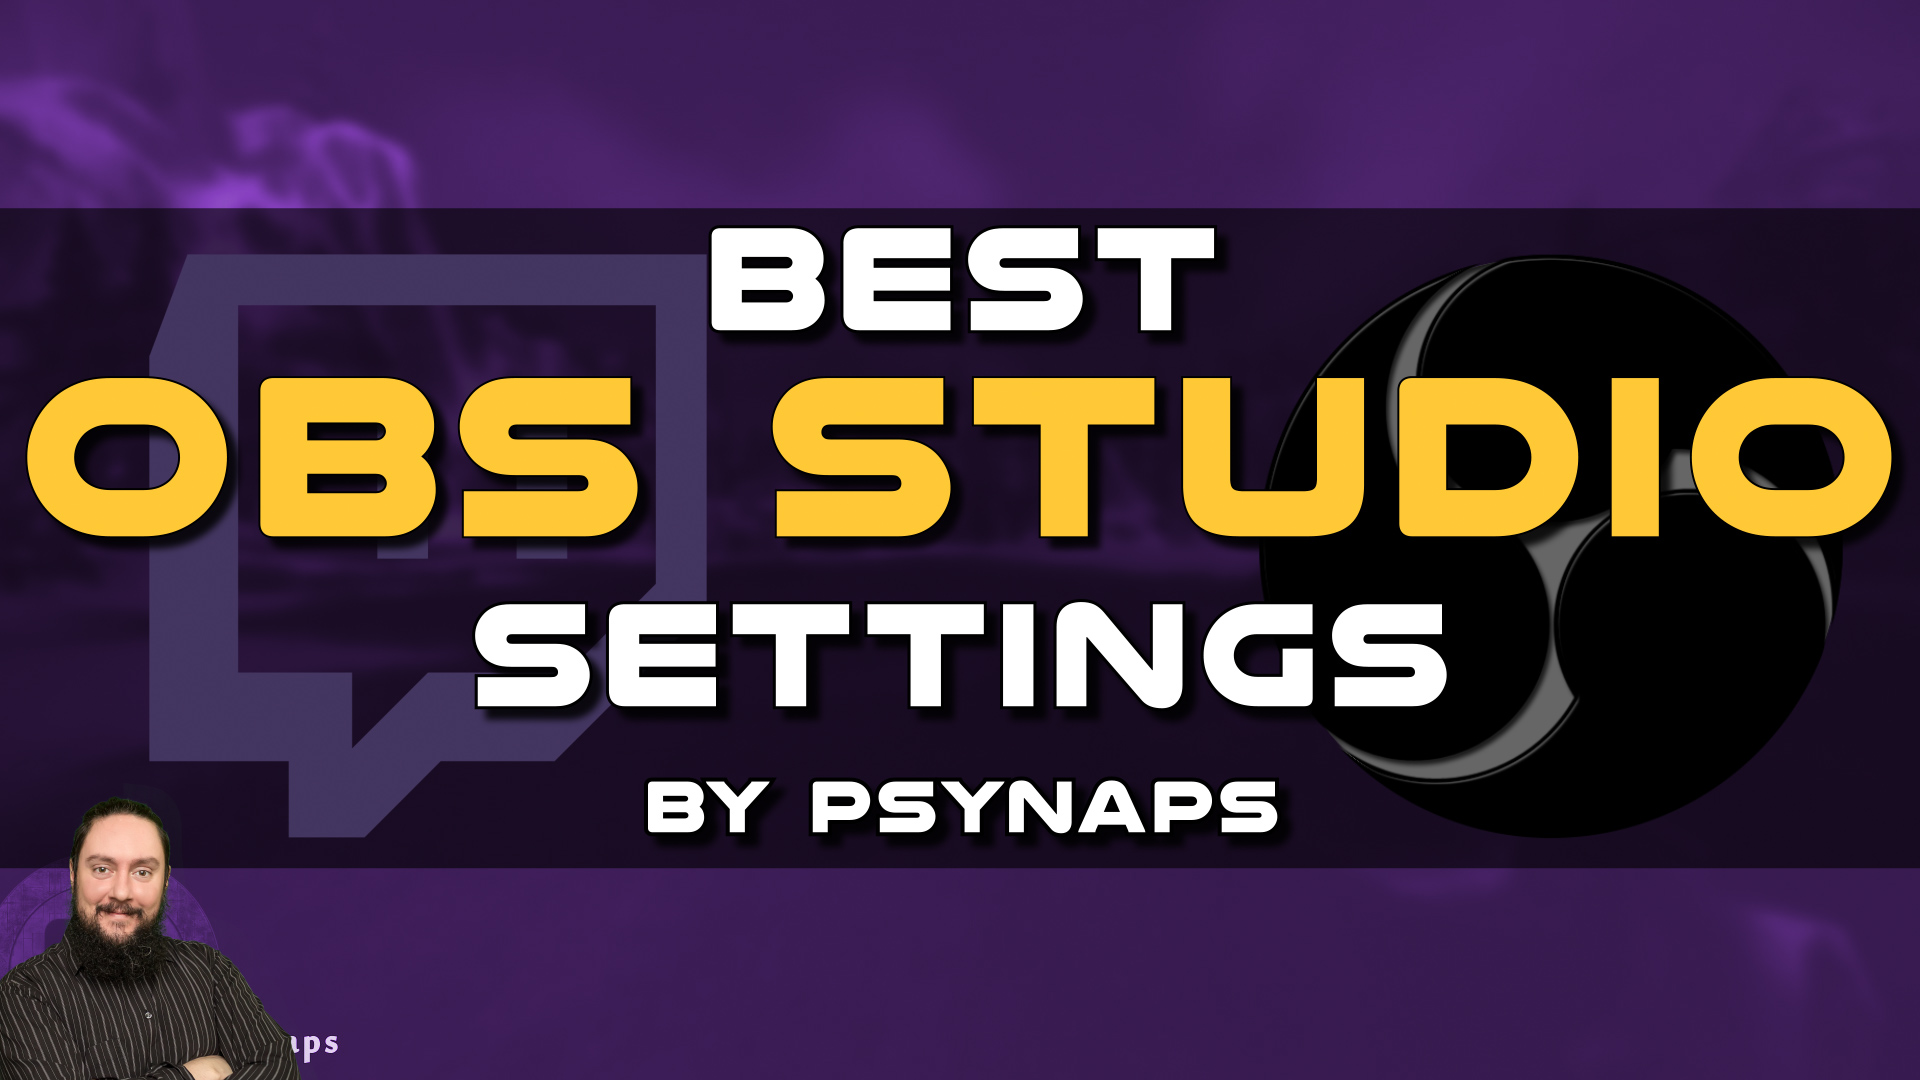 Best OBS Studio Settings for Twitch by Psynaps - Psynaptic